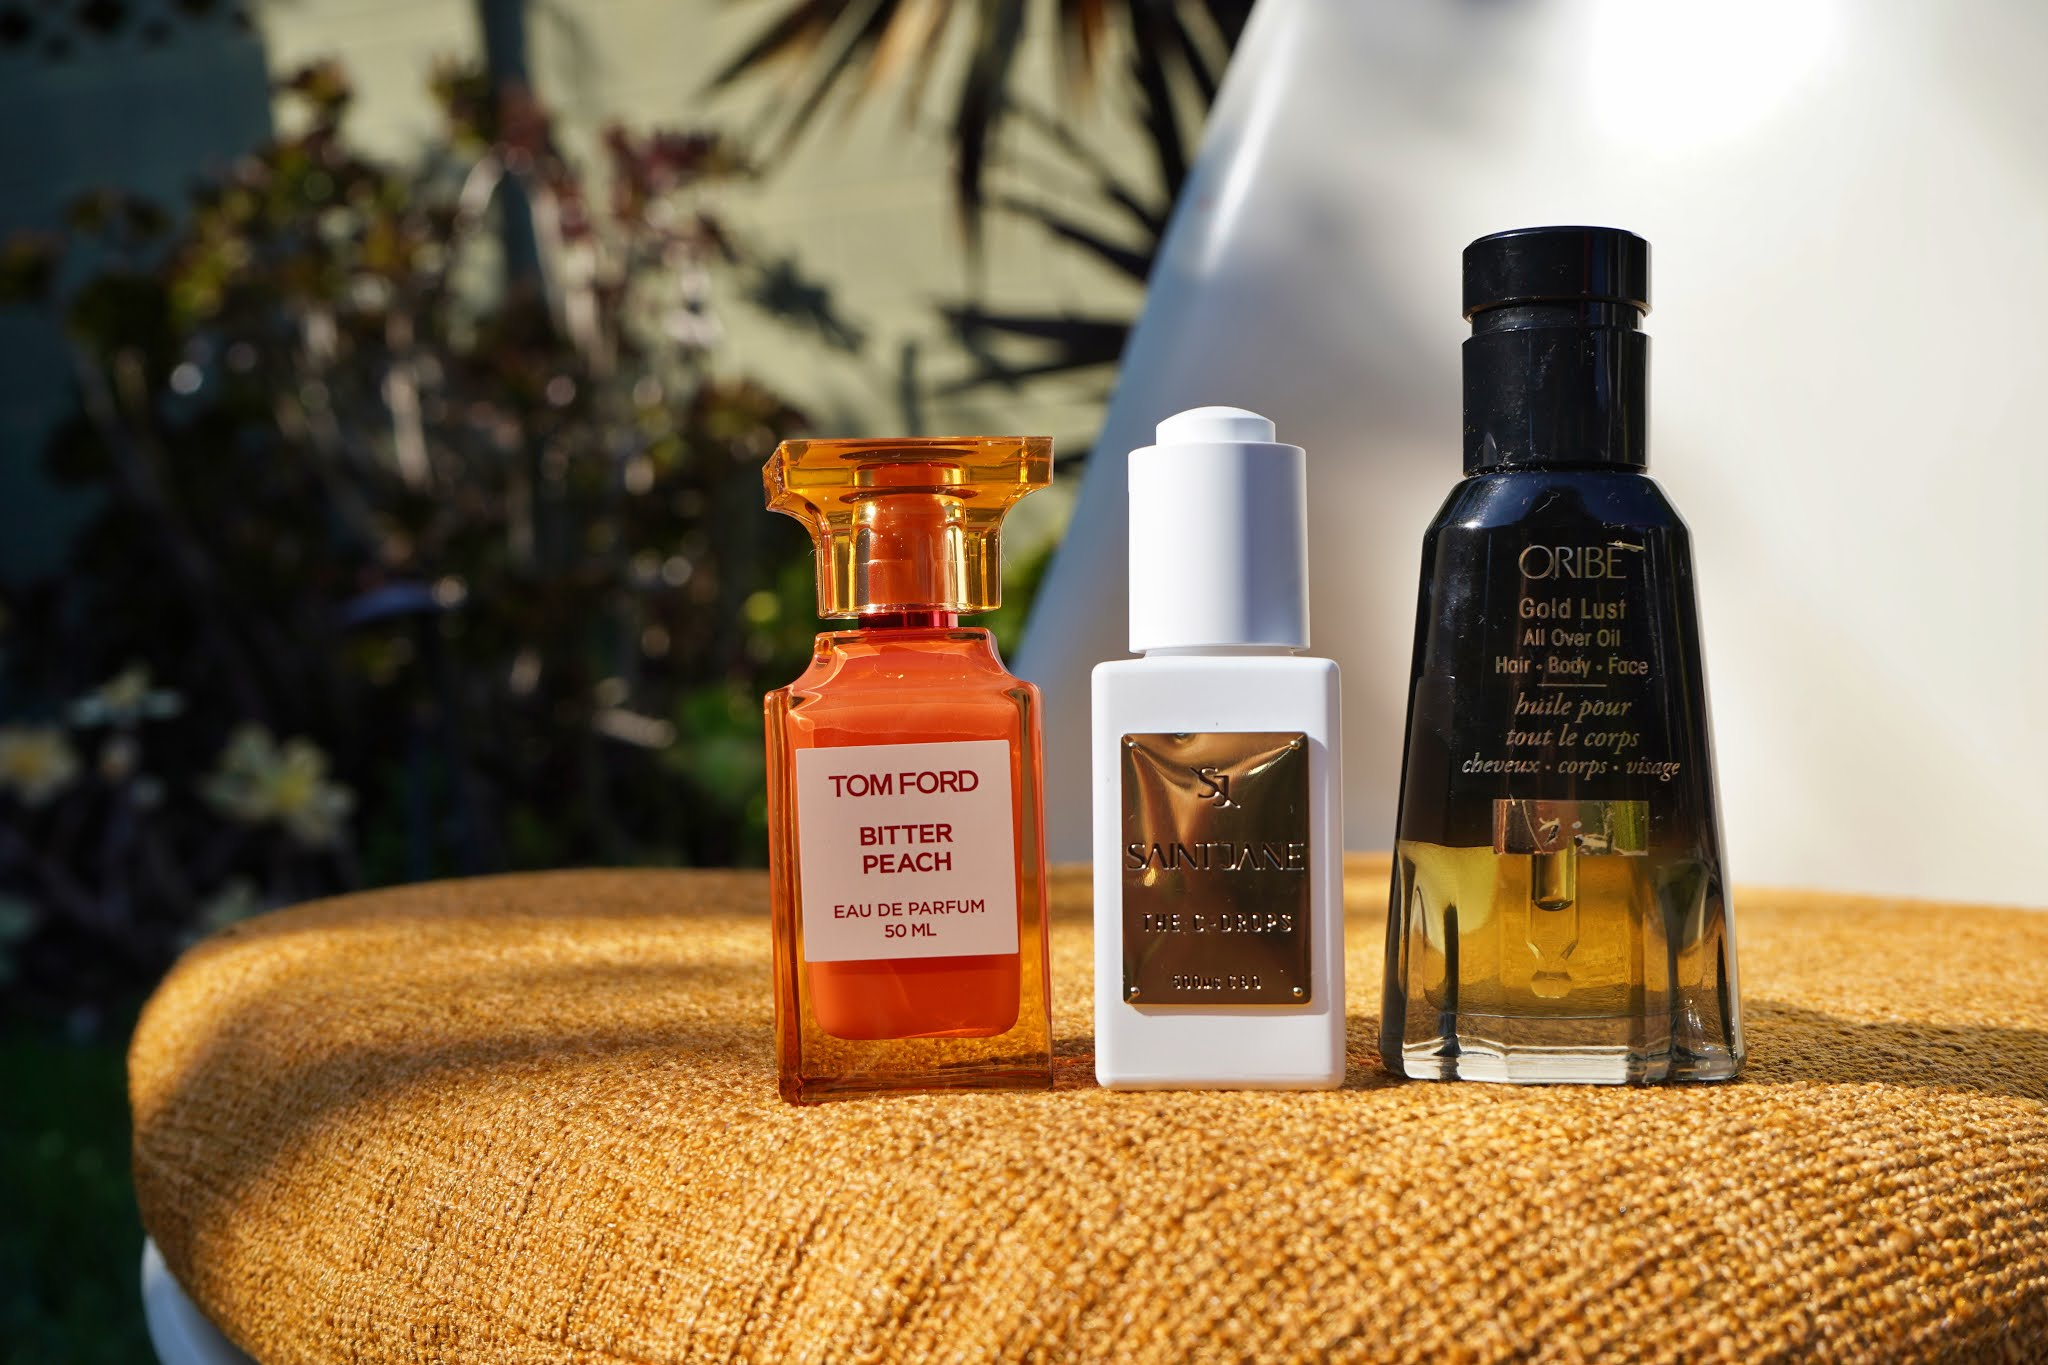 products for skin, hair, and fragrance